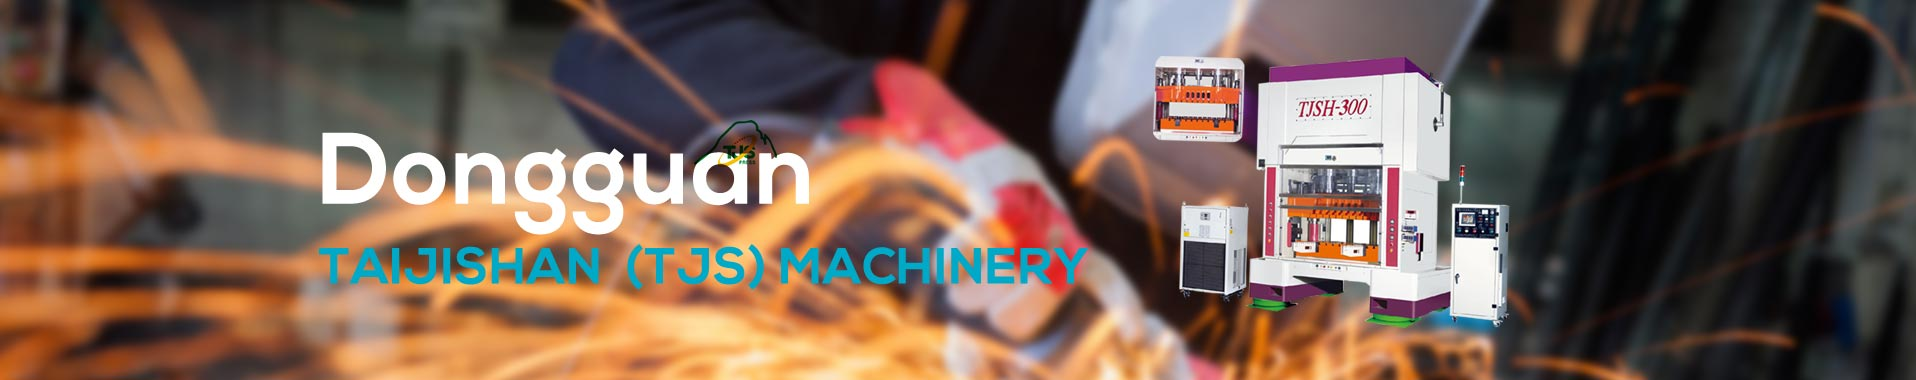 Dongguan Taijishan Machinery Equipment Co Ltd Banner